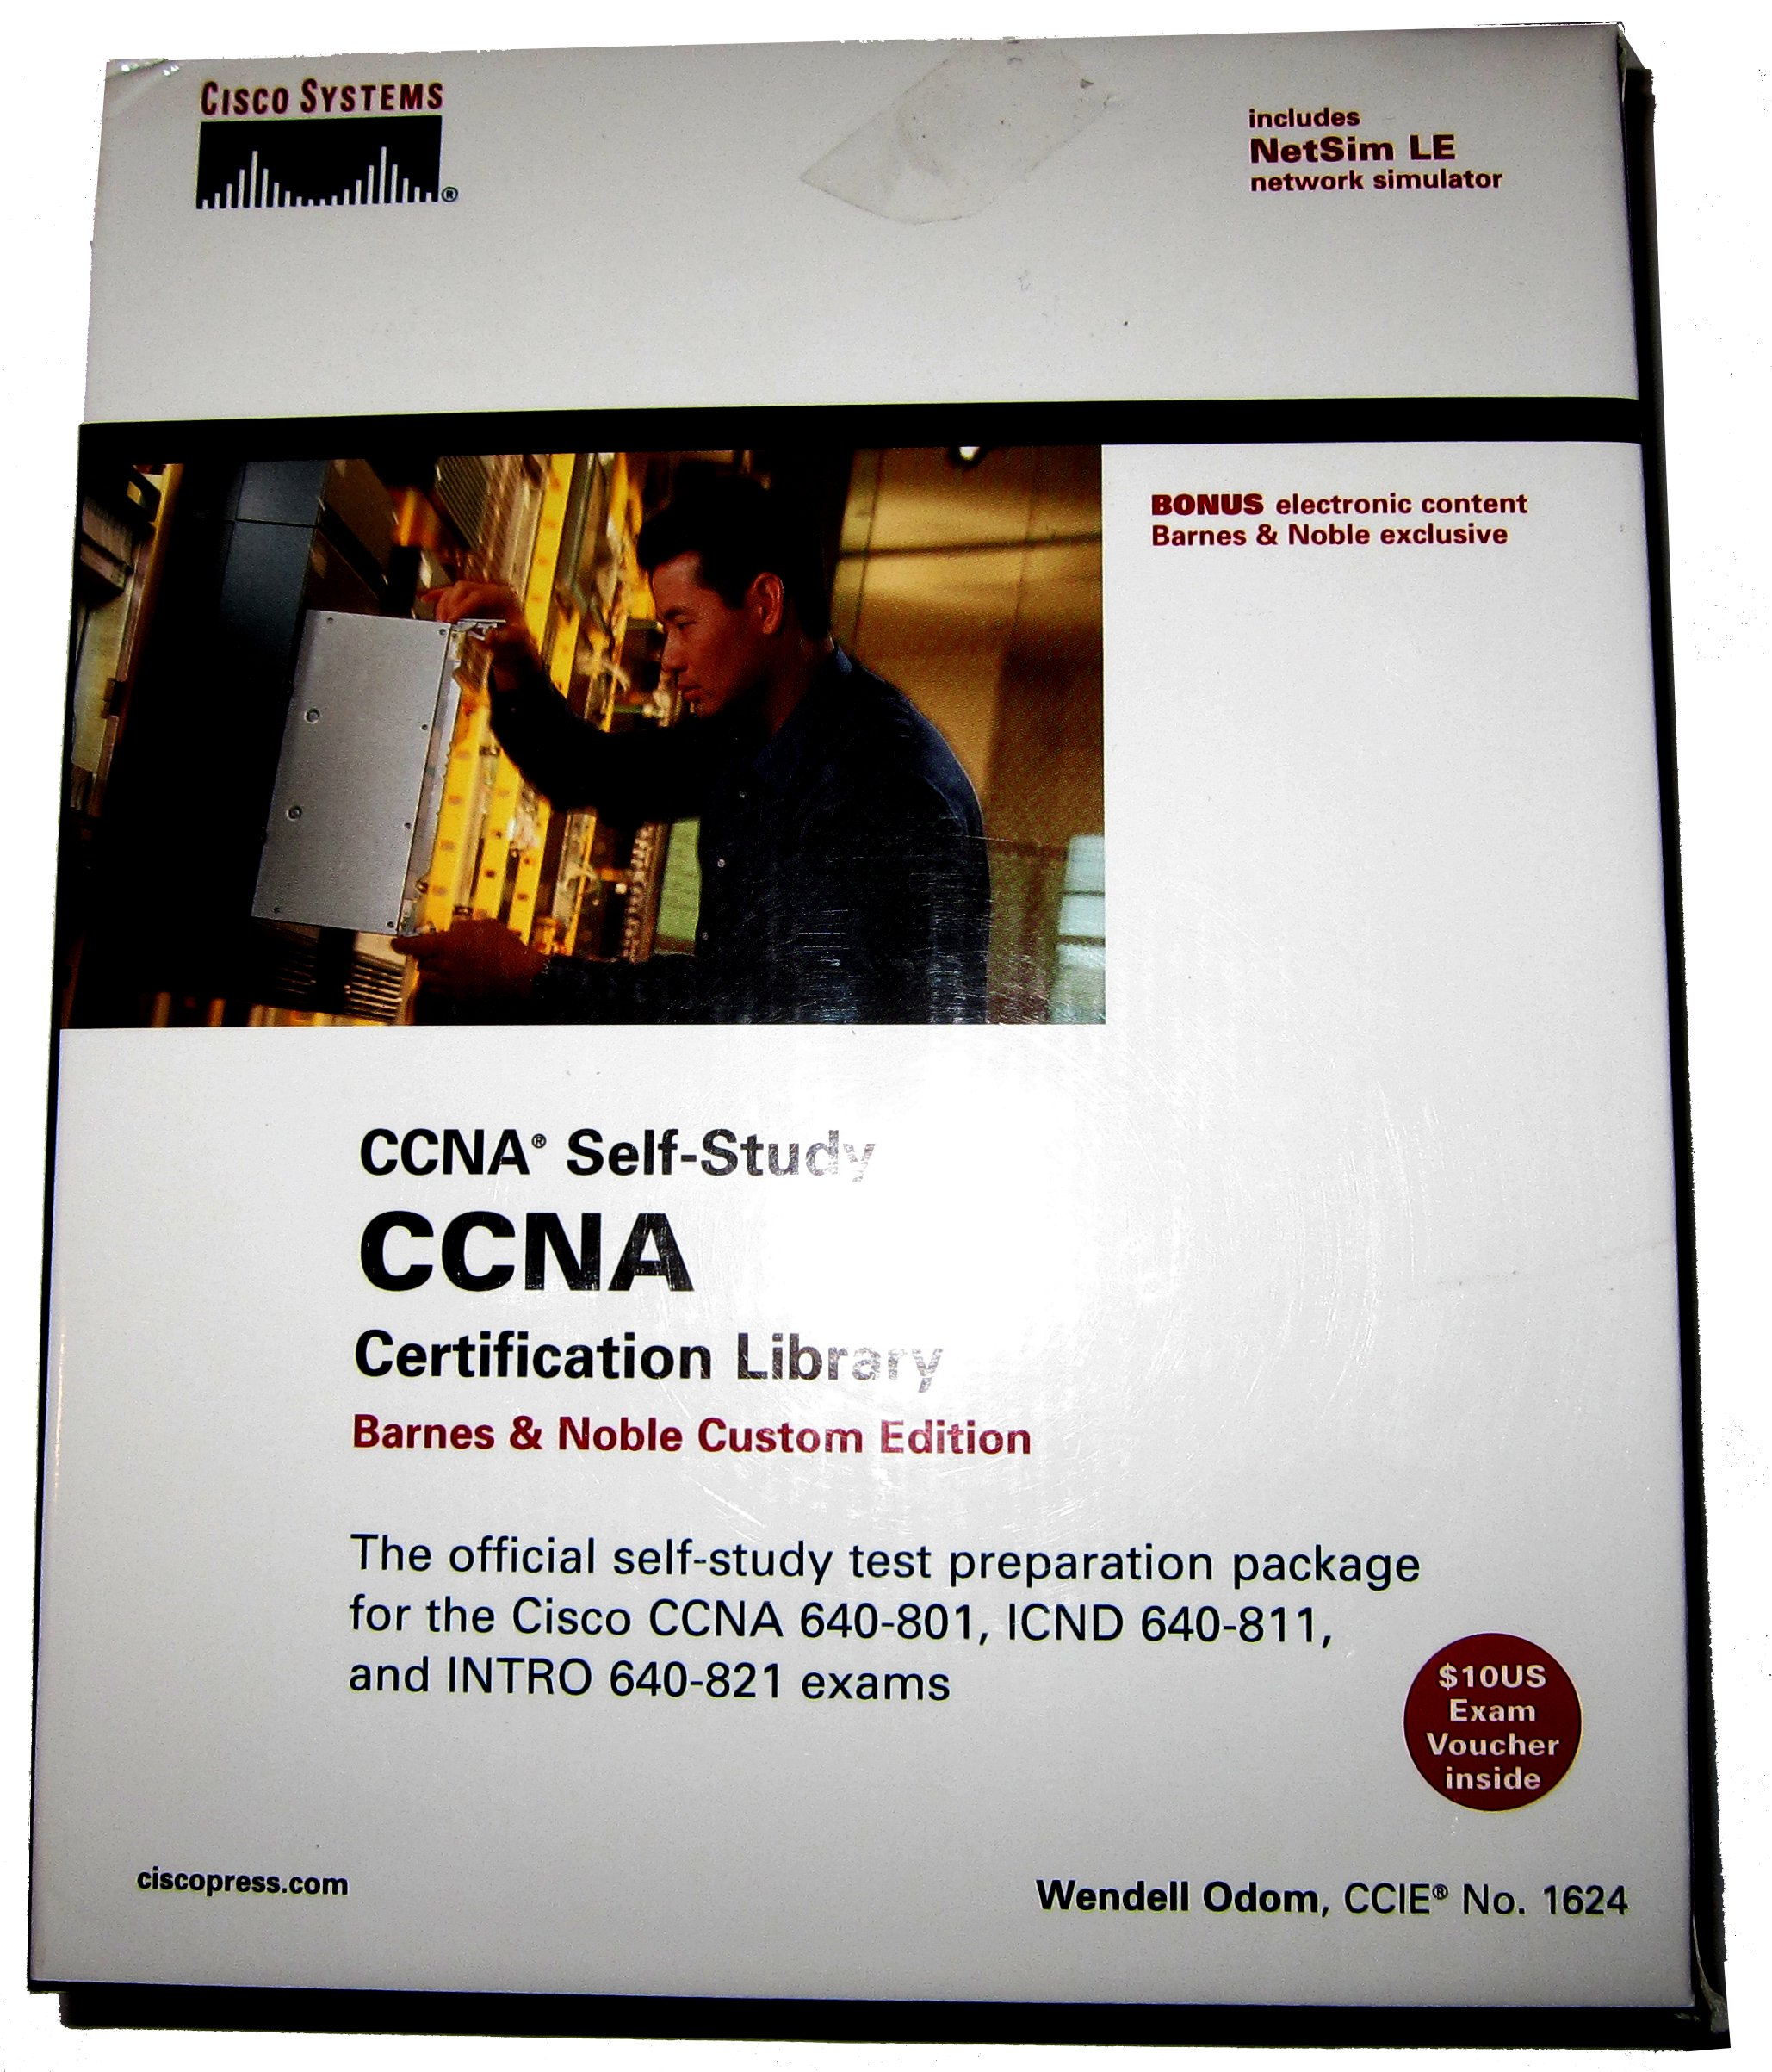 Ccna Certification Library Ccna Self Study The Official Self